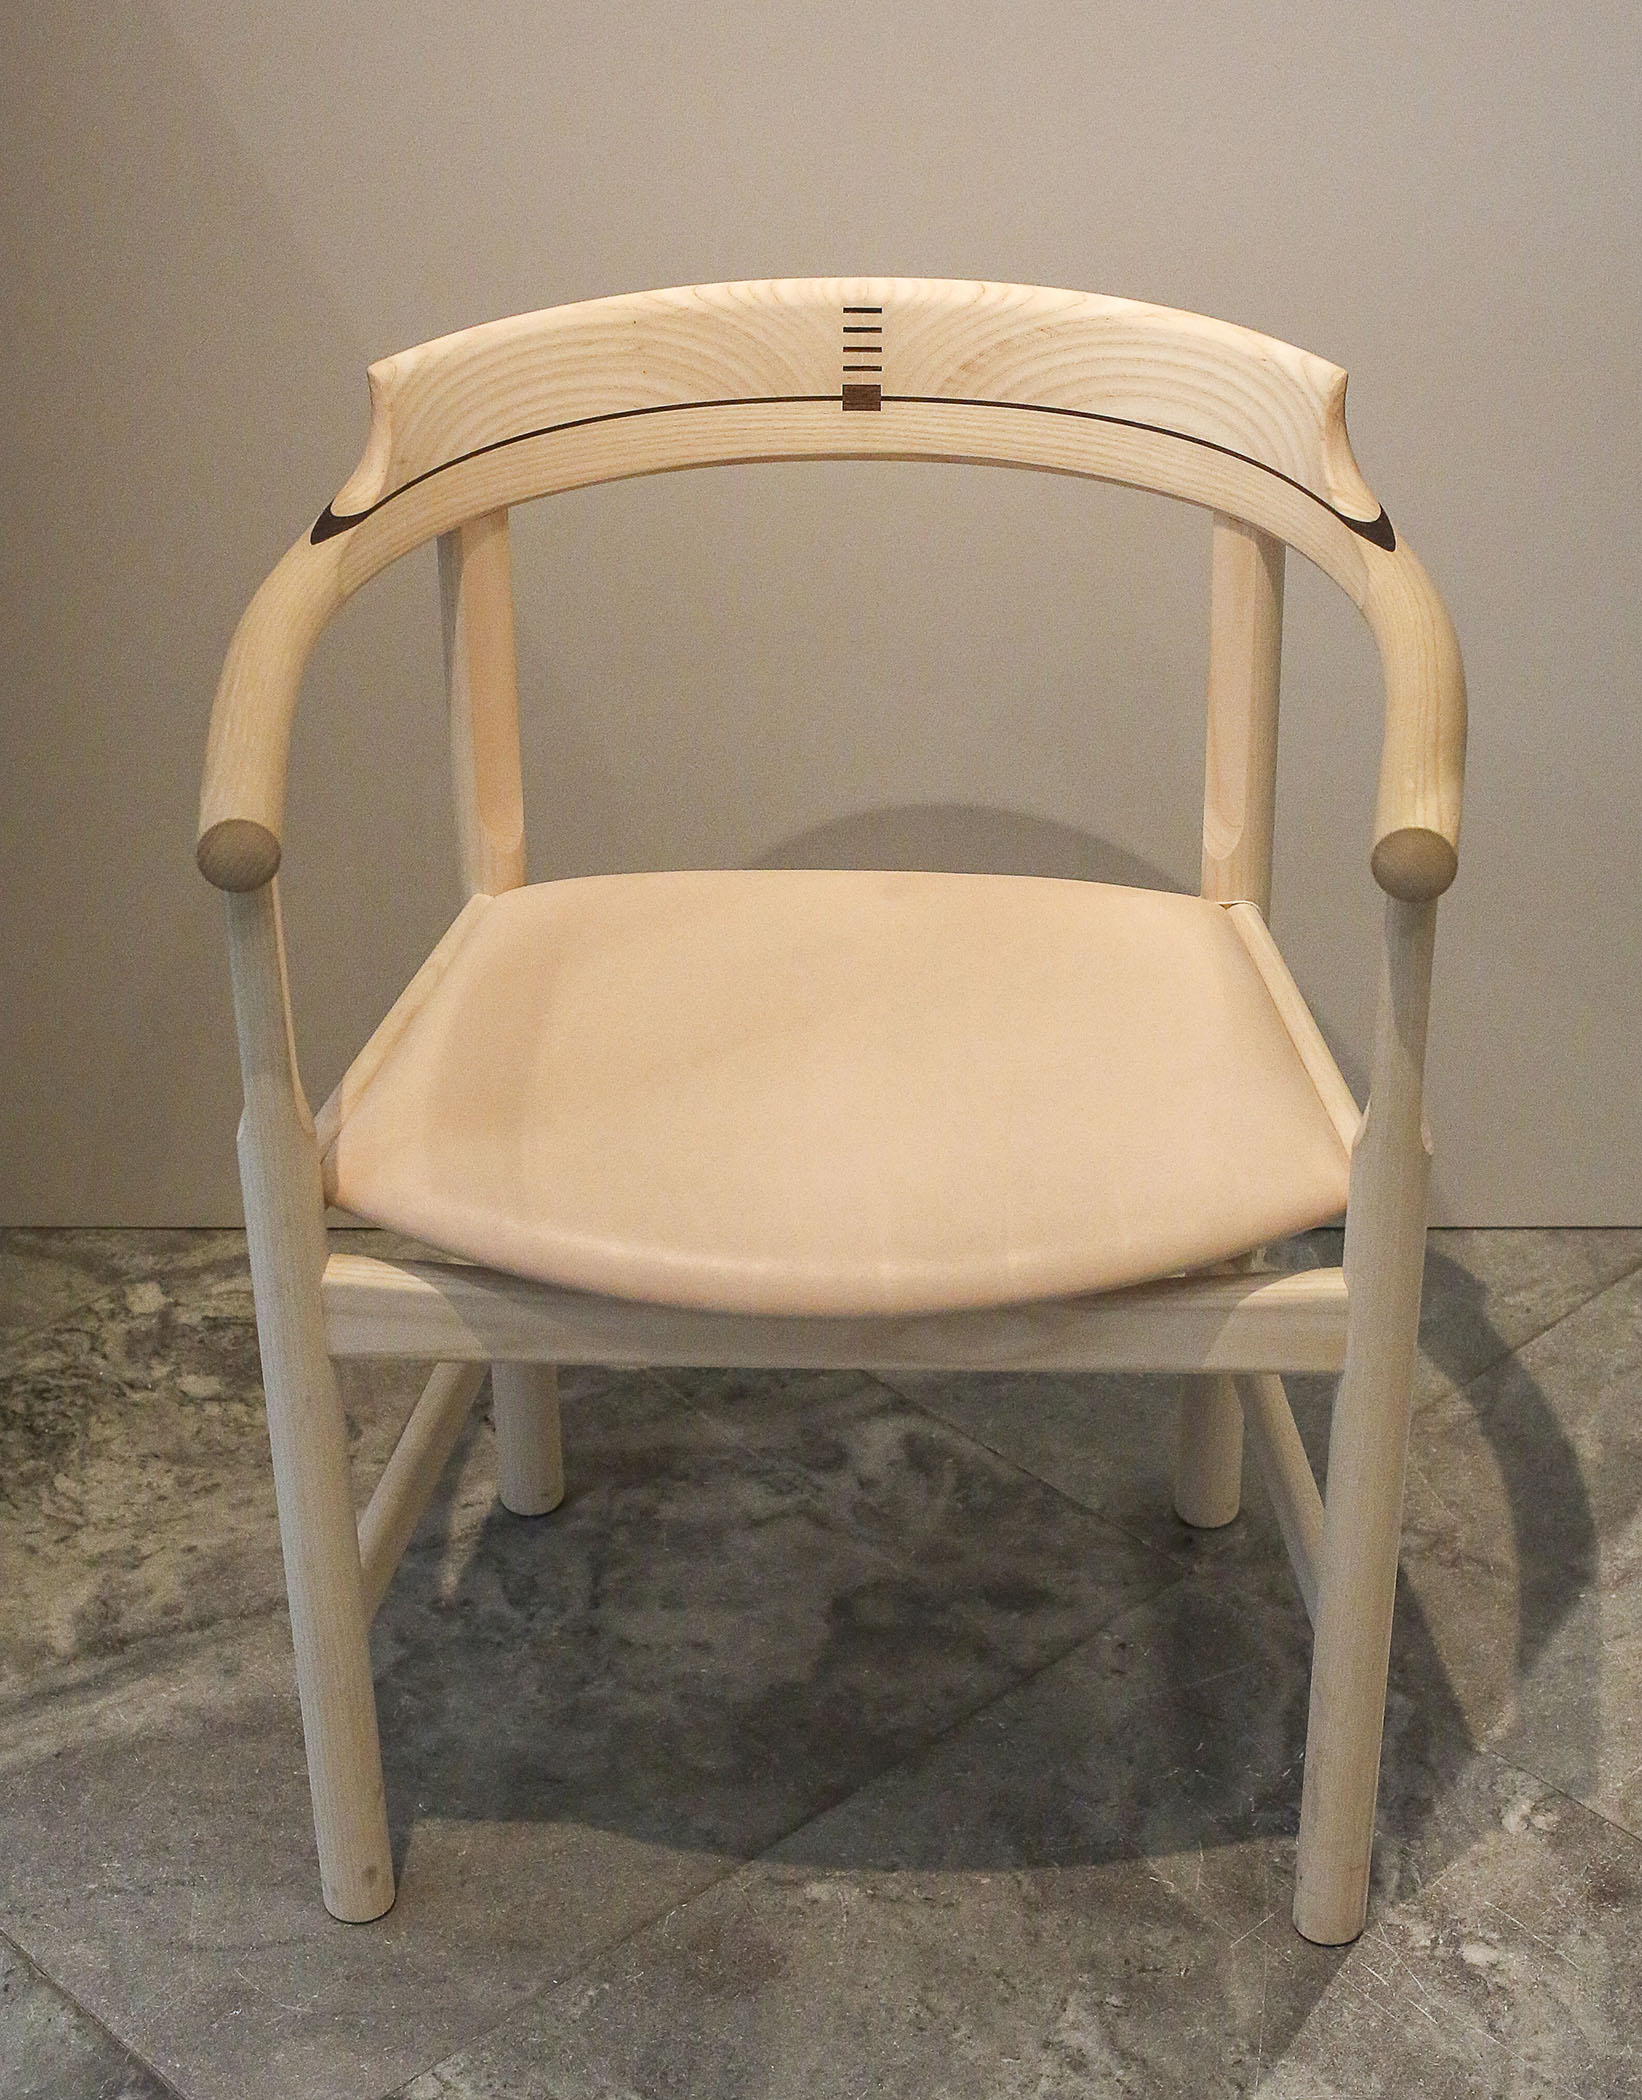 PP52 Chair by Hans Wegner for PP Mobler Chairblog